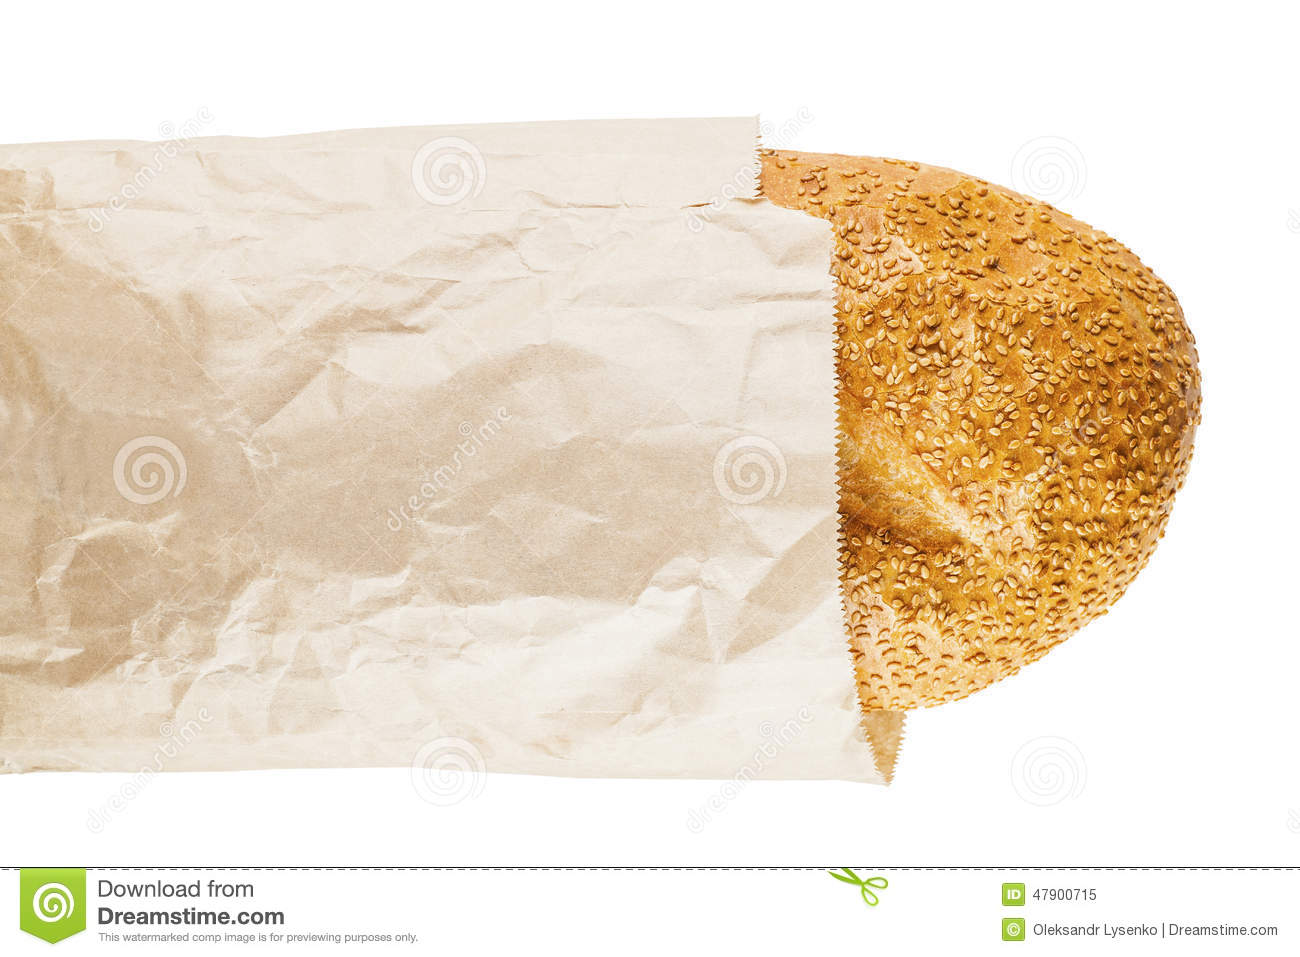 Bread with sesame seeds in a paper on a white background isolated.